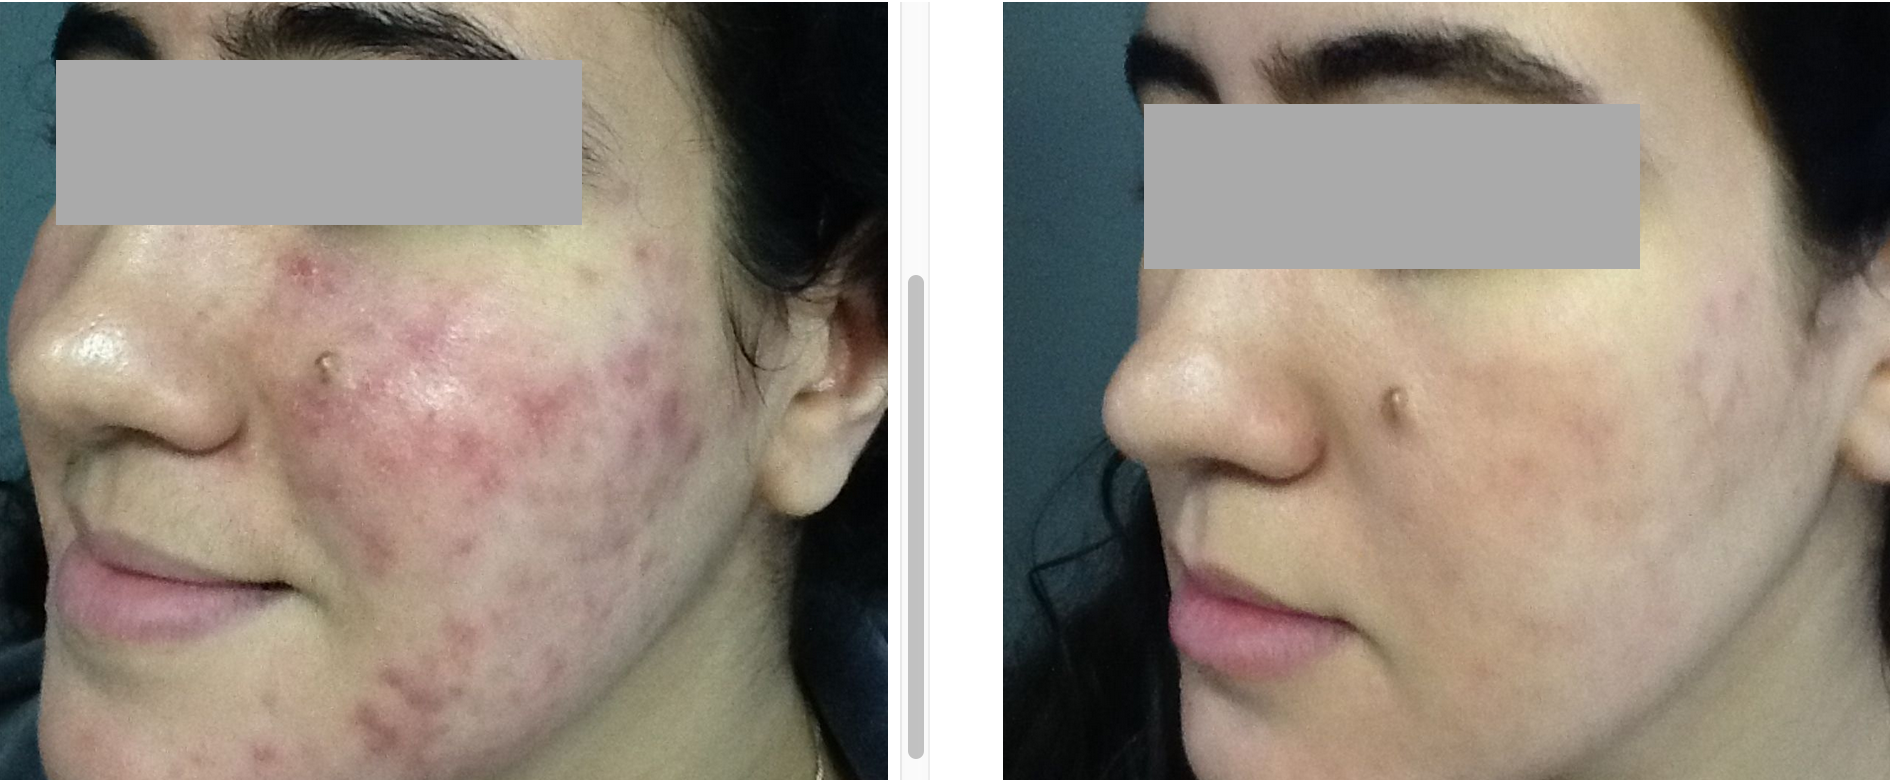 GD Intensive Acne Treatment 8-weeks